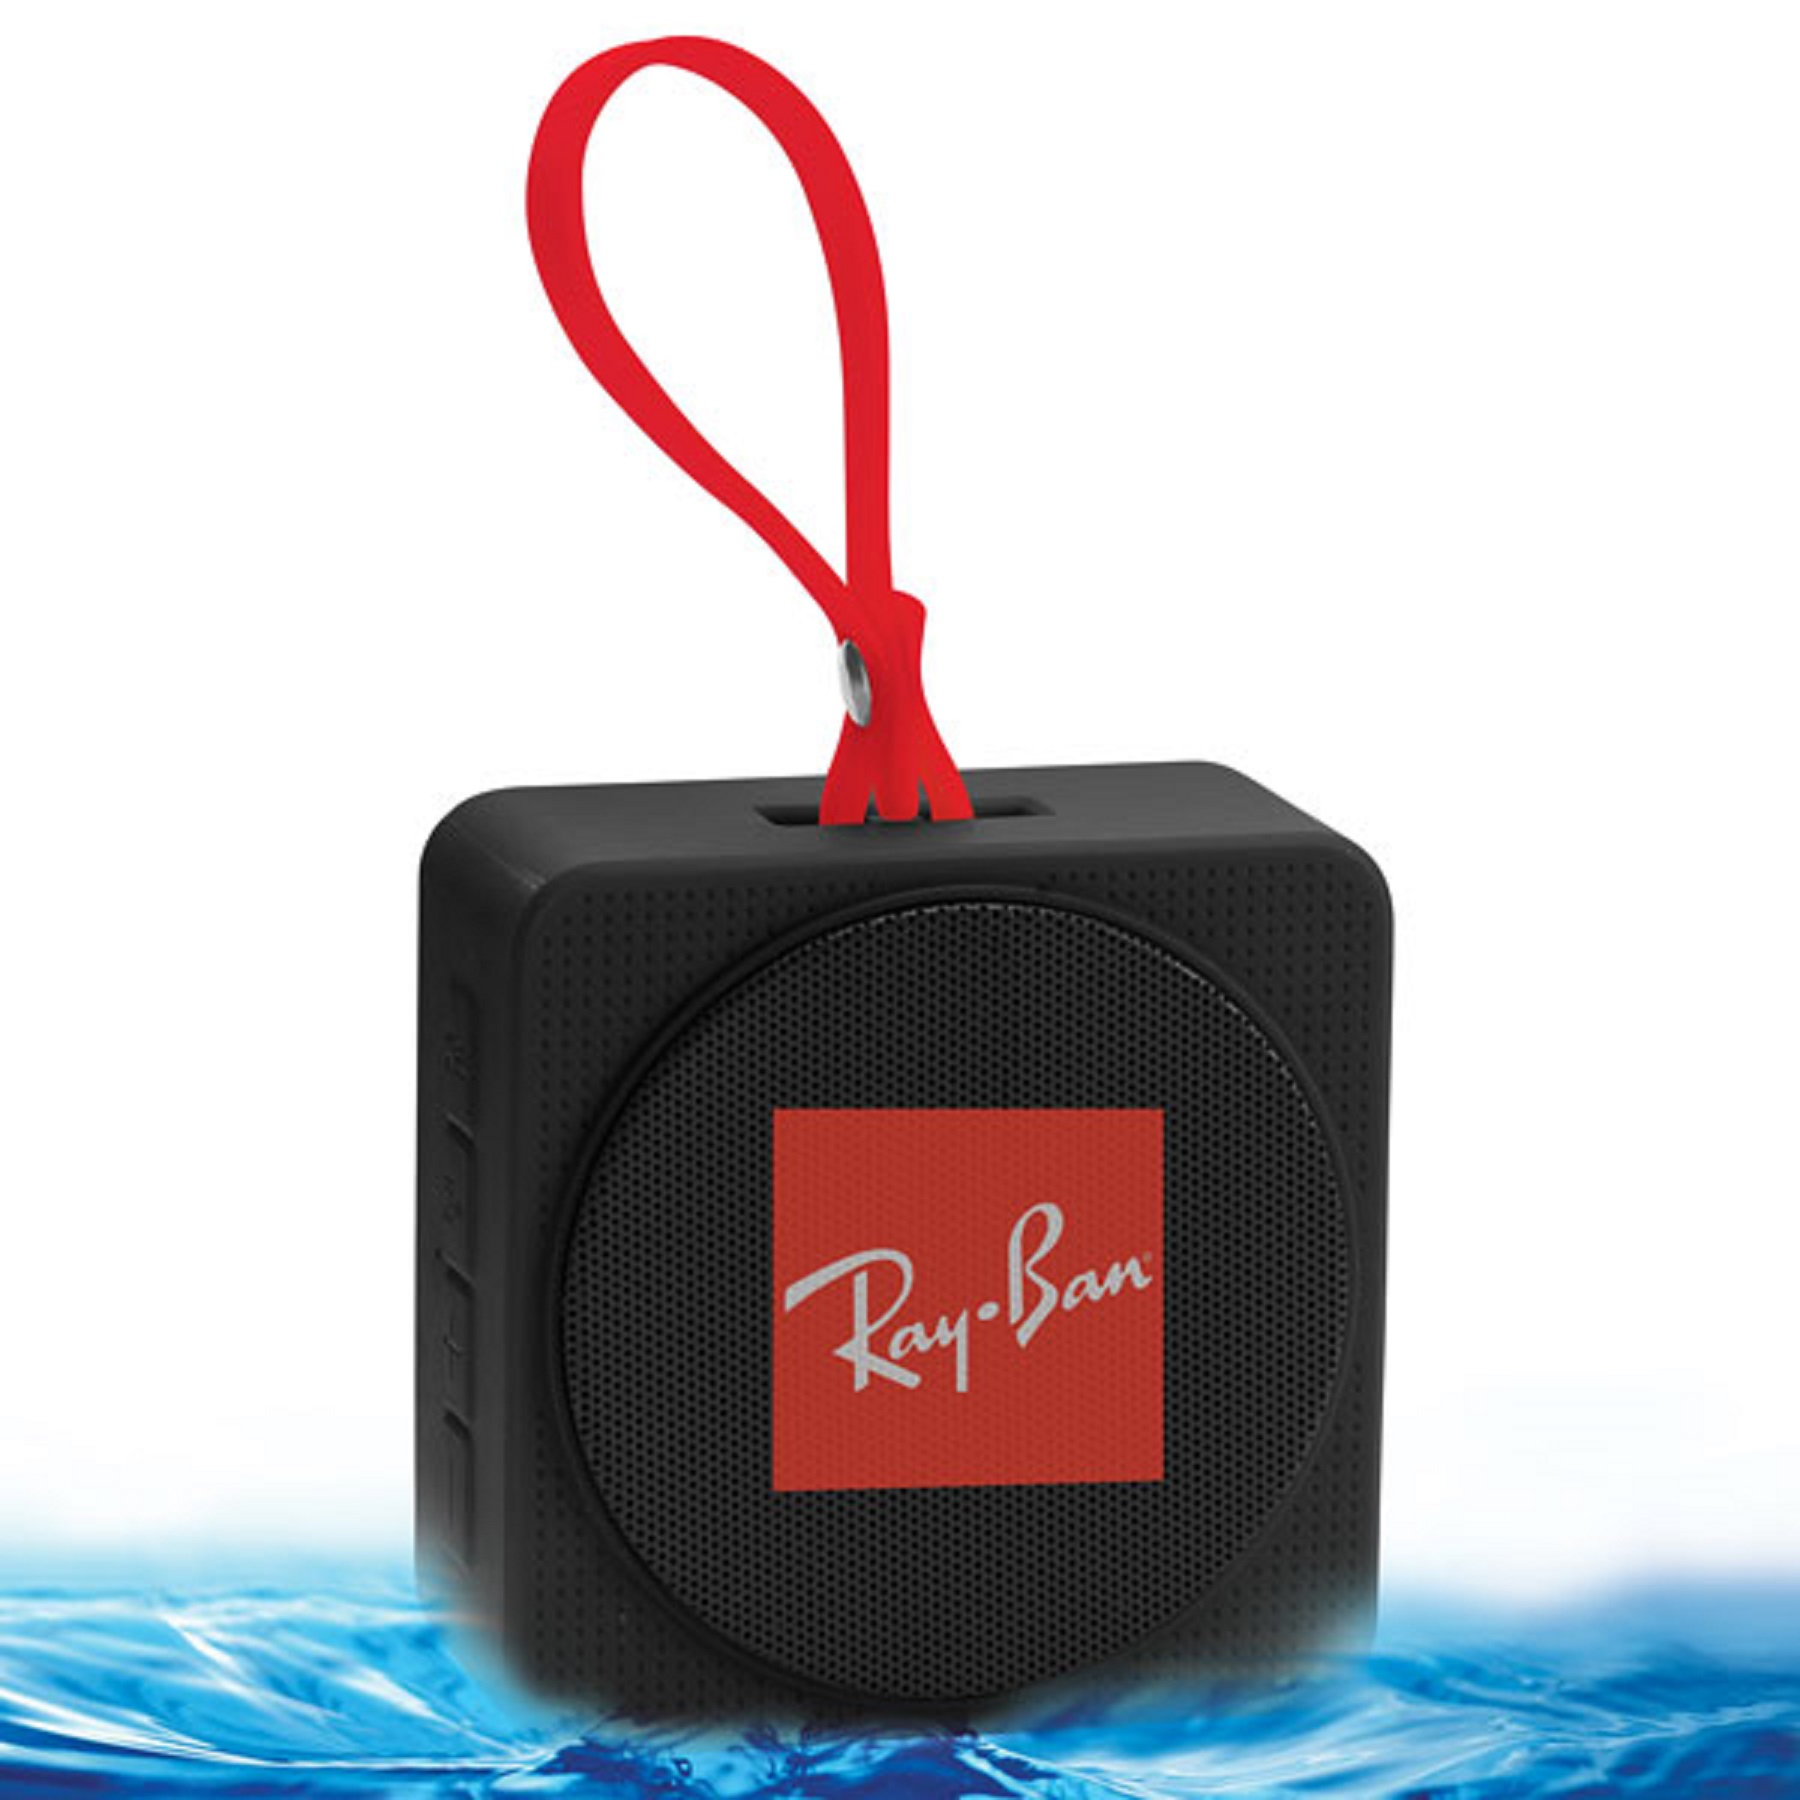 525343308-202 - Watercube Speaker - Waterproof bluetooth speaker - thumbnail